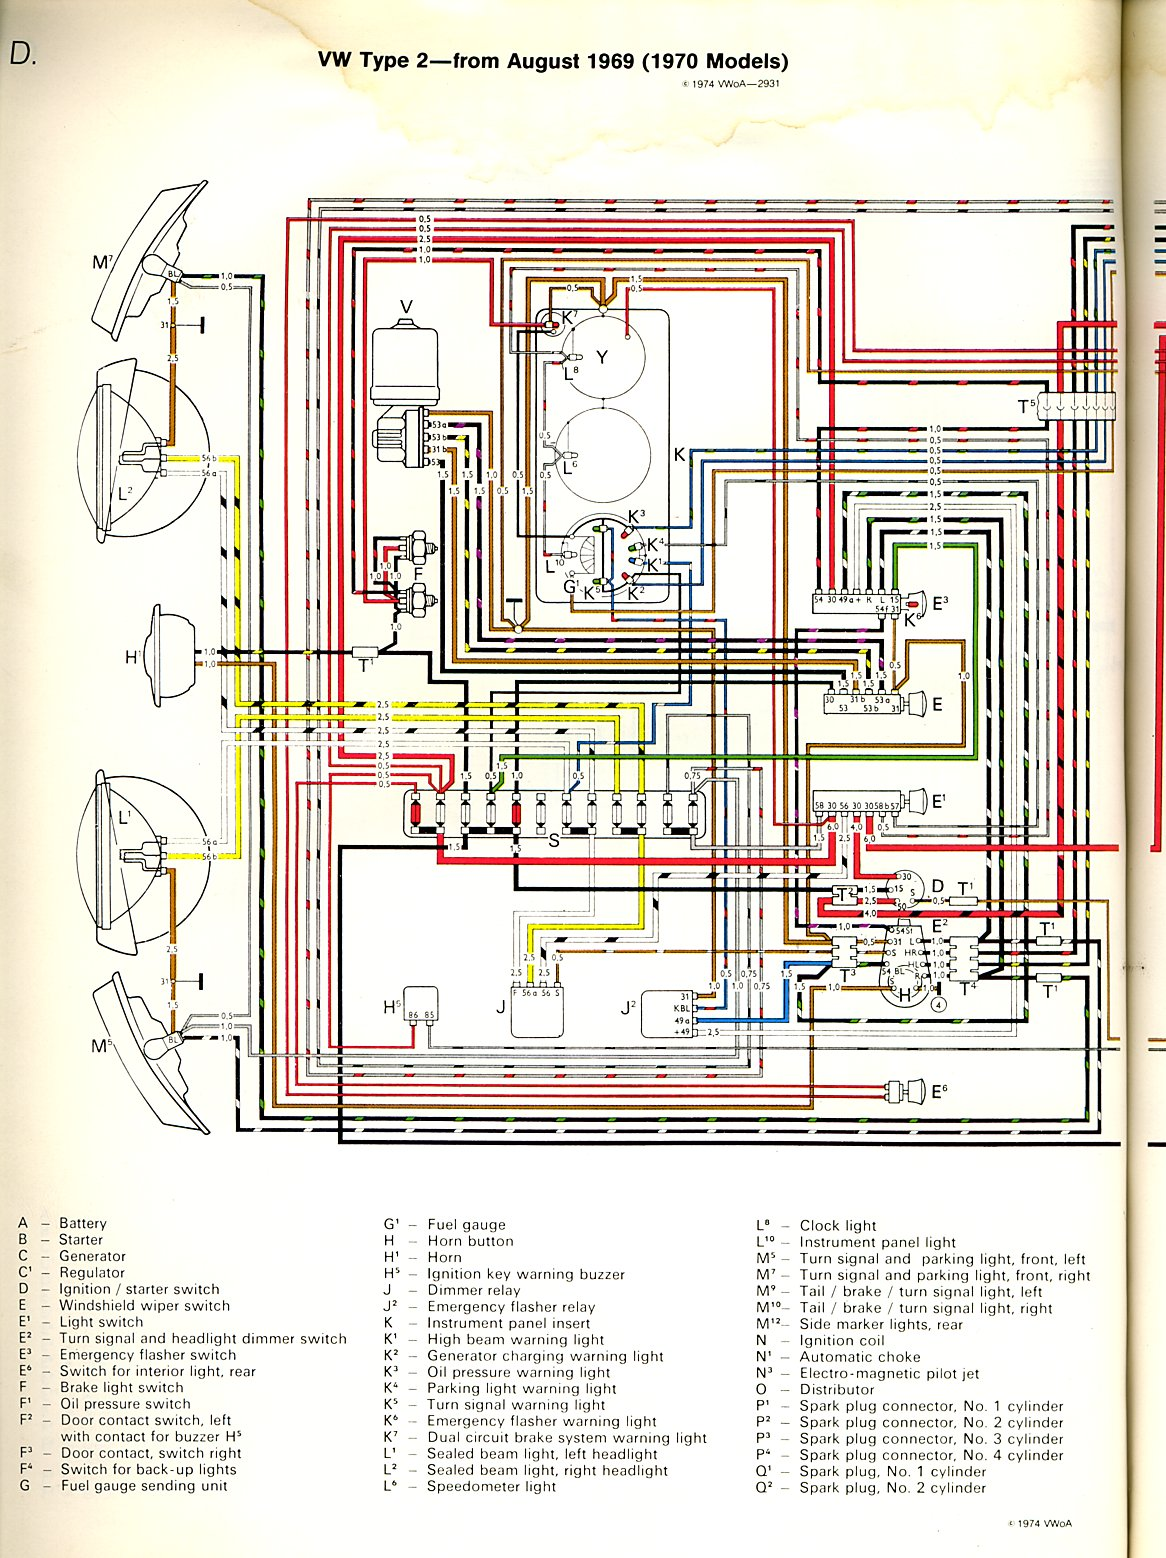 baybus_70a thesamba com type 2 wiring diagrams Chevy Brake Light Switch Wiring Diagram at reclaimingppi.co